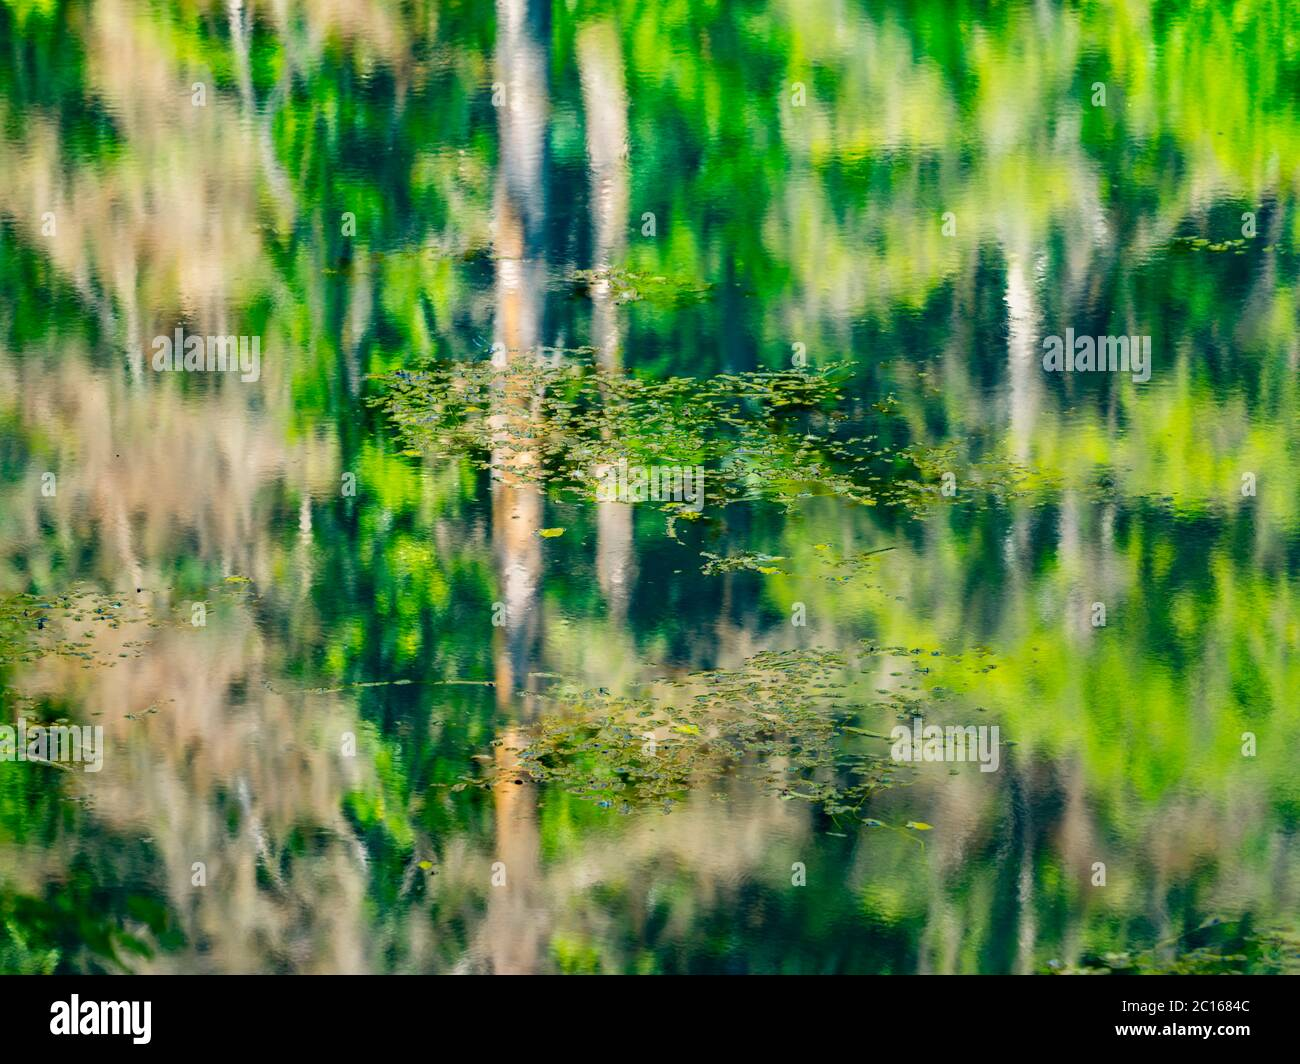 Lake with waterfall and derelict old sawmill and watermill Cogrljevo jezero Croatia Europe almost artistic water reflections of Green Spring forest Stock Photo